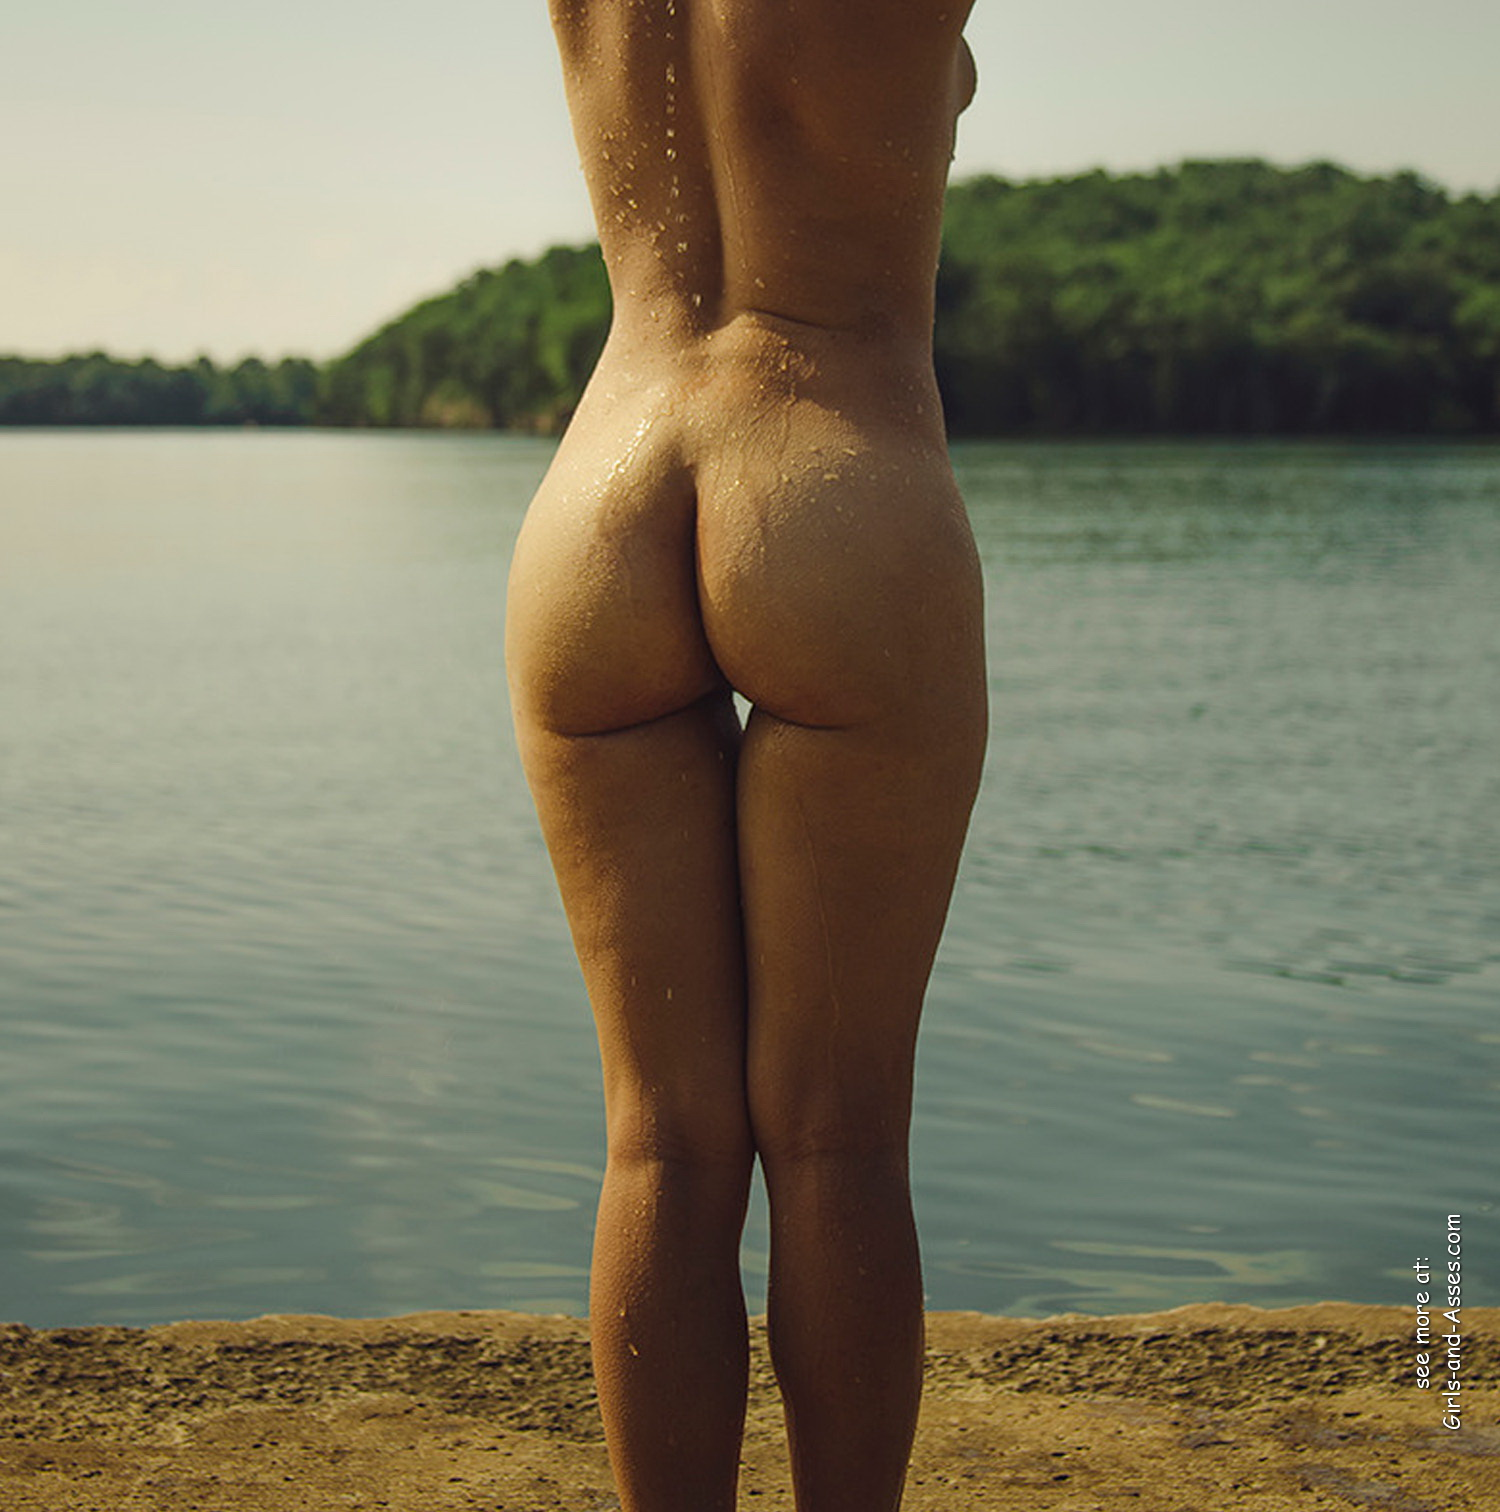 naked girl with cute butt on the river photo 05306